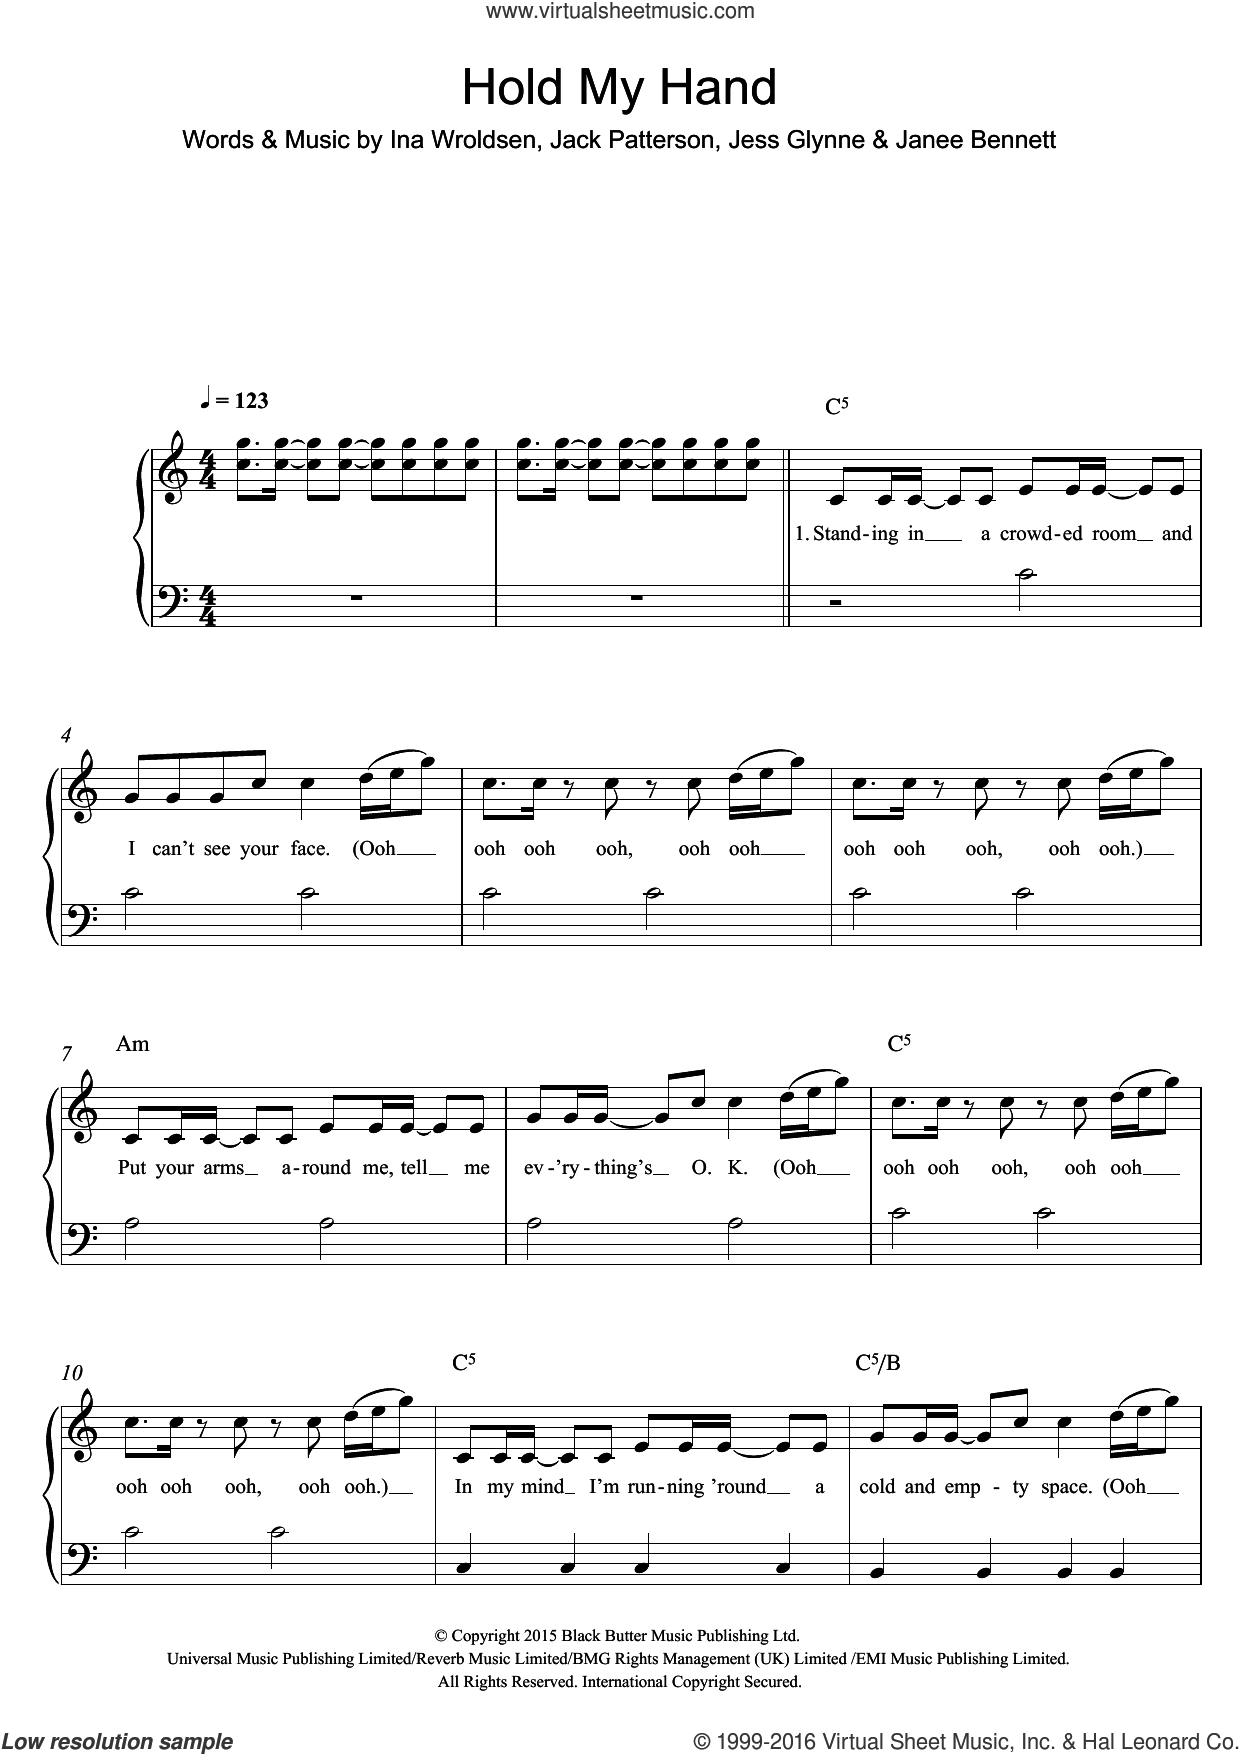 Hold My Hand sheet music for piano solo by Jess Glynne, Ina Wroldsen, Jack Patterson and Janee Bennett, easy skill level